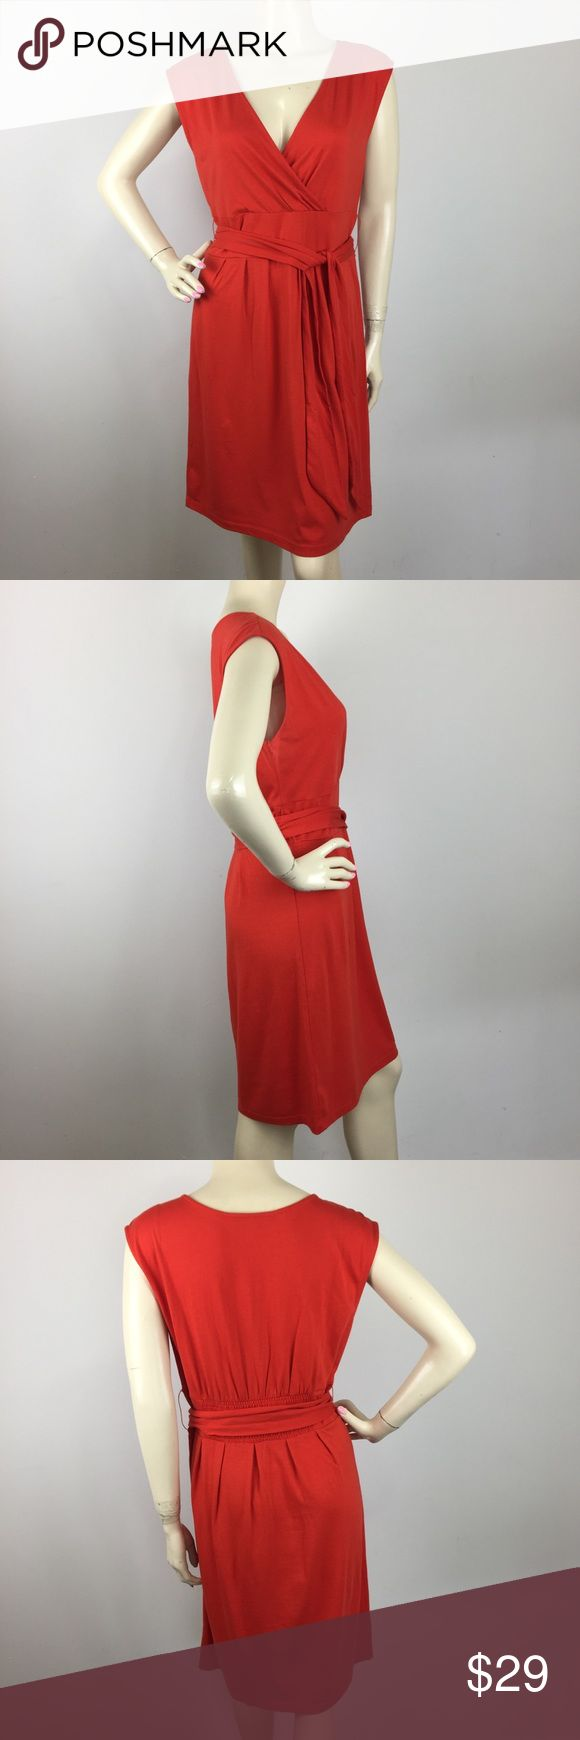 """Ann Taylor Loft Orange Medium Petite CONDITION: No minimal sign of Wear. MATERIAL: 60% Cotton 40% Modal  (Please note that the measurements are approximate) ALL MEASUREMENTS ARE TAKEN WITH GARMENT LYING FLAT: BUST: 18"""" WAIST: 16"""" HIPS: 21"""" LENGHT: 37"""" Ann Taylor Dresses"""